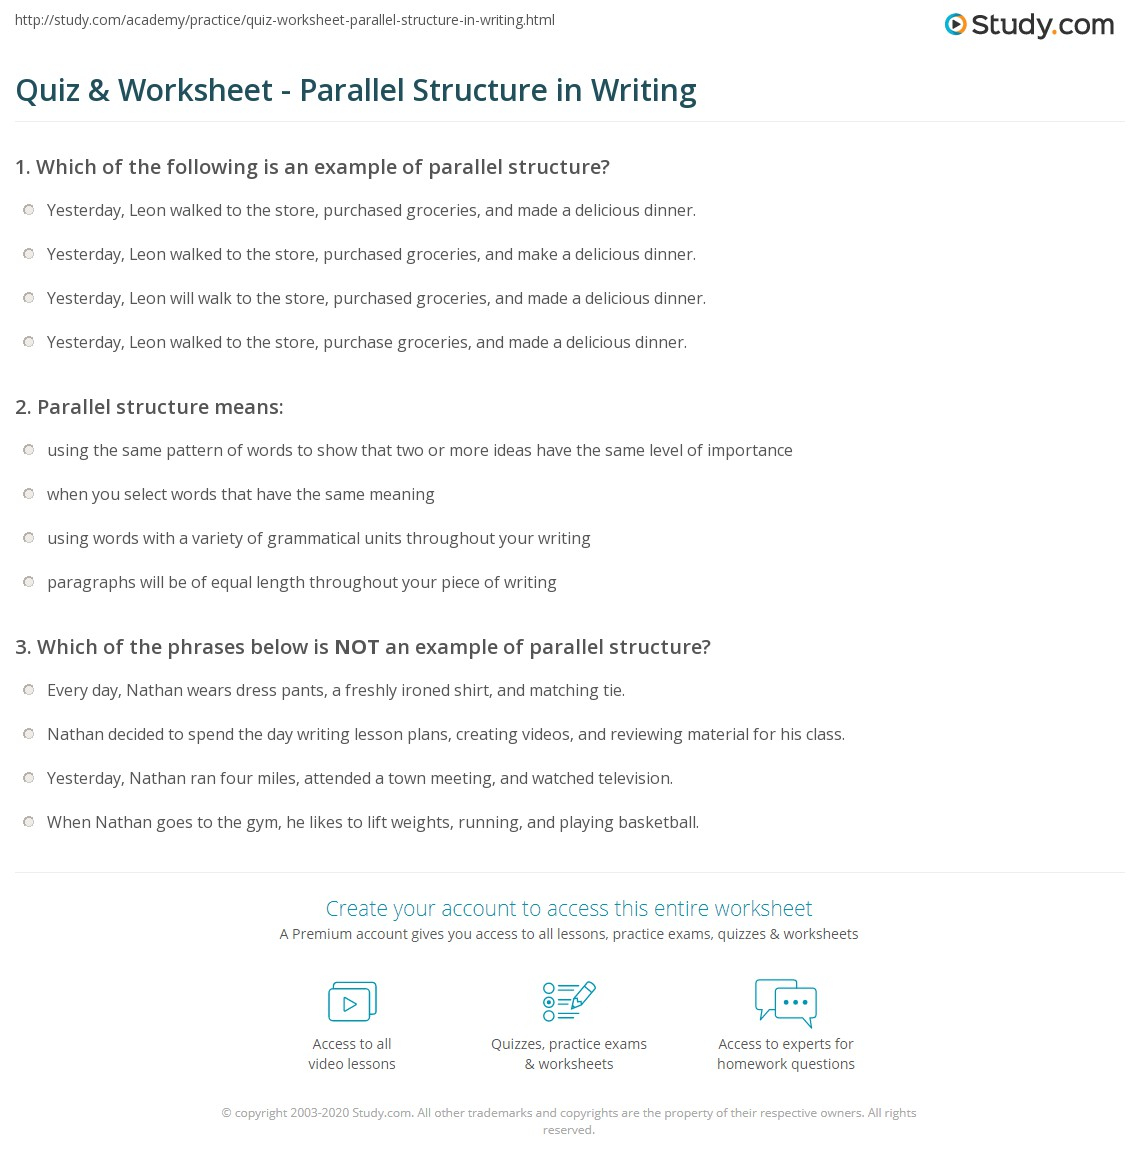 Quiz & Worksheet - Parallel Structure In Writing | Study